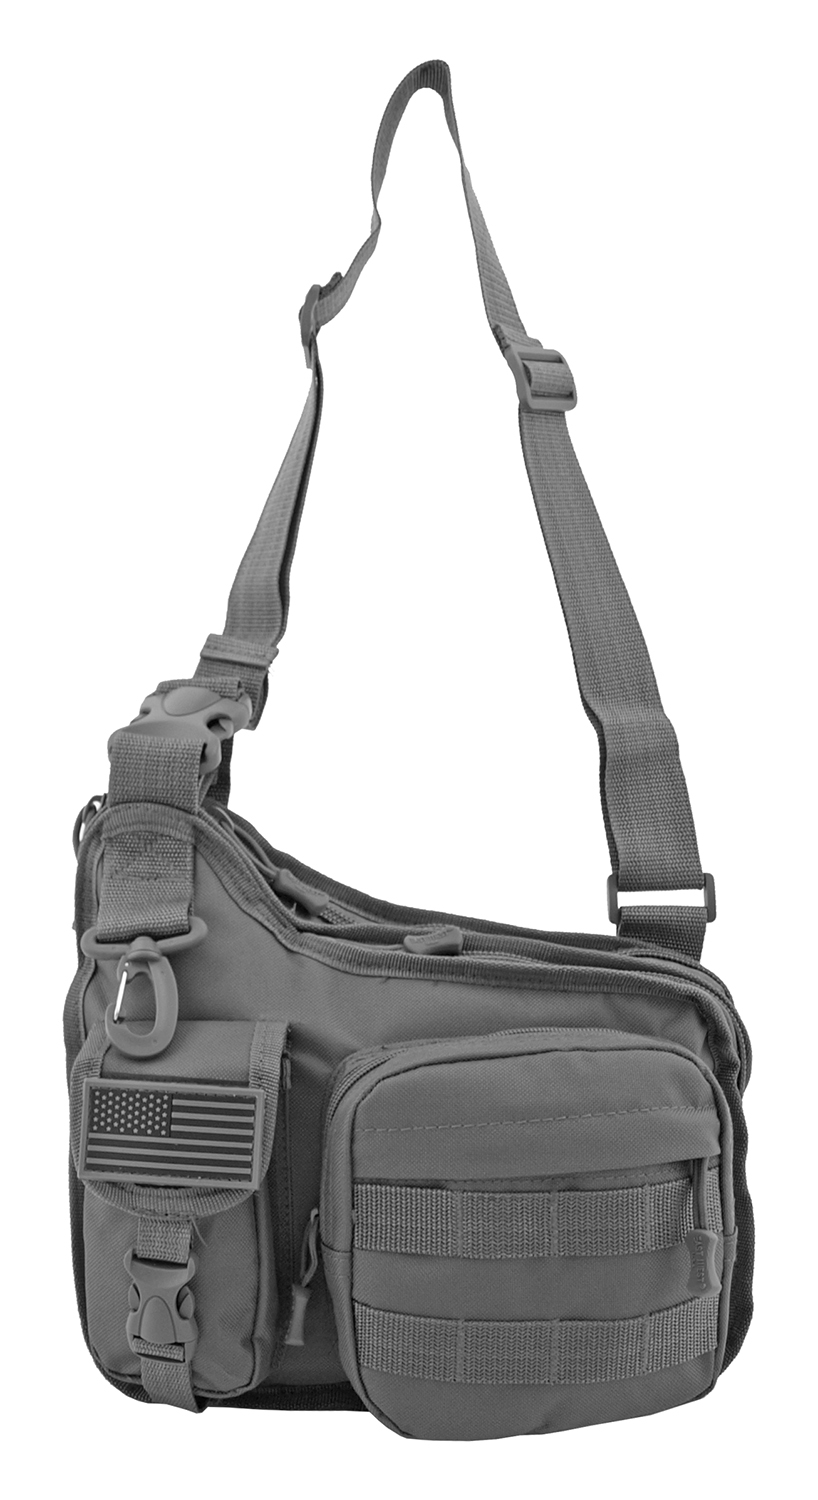 Gun Slinger Tactical Bag - Grey